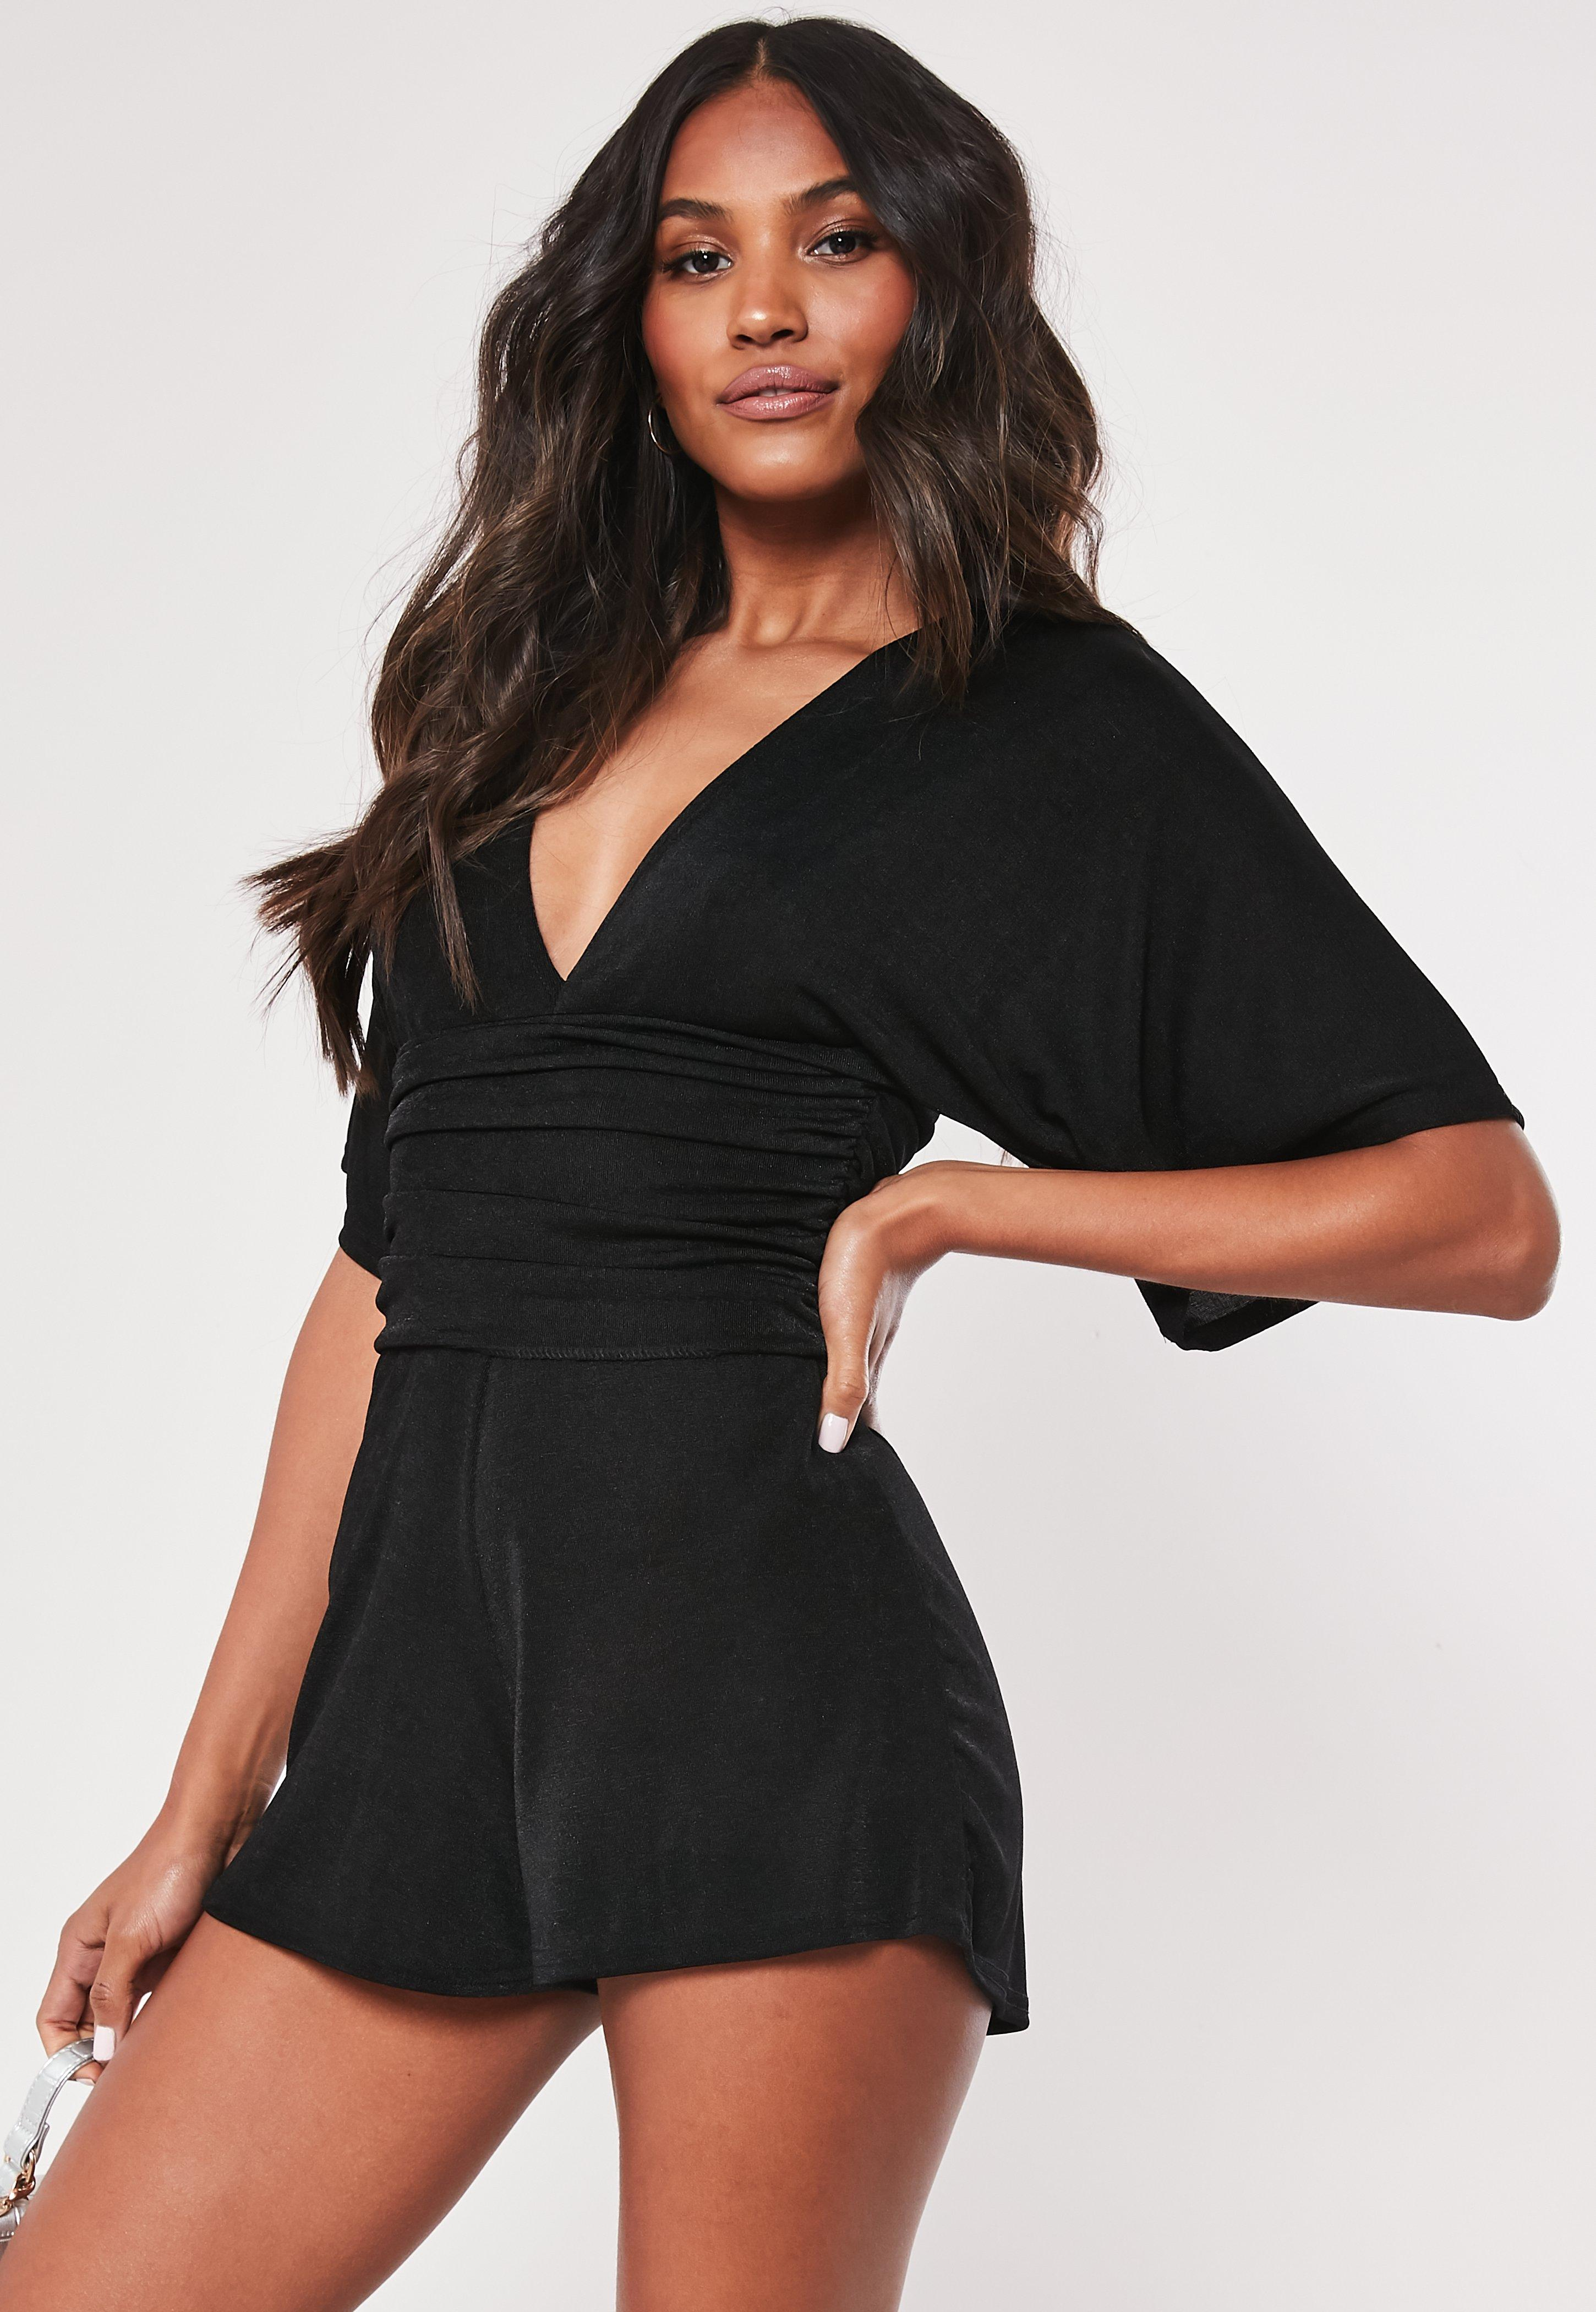 9fdb771a80 Playsuits - Women s Playsuits Online - Missguided